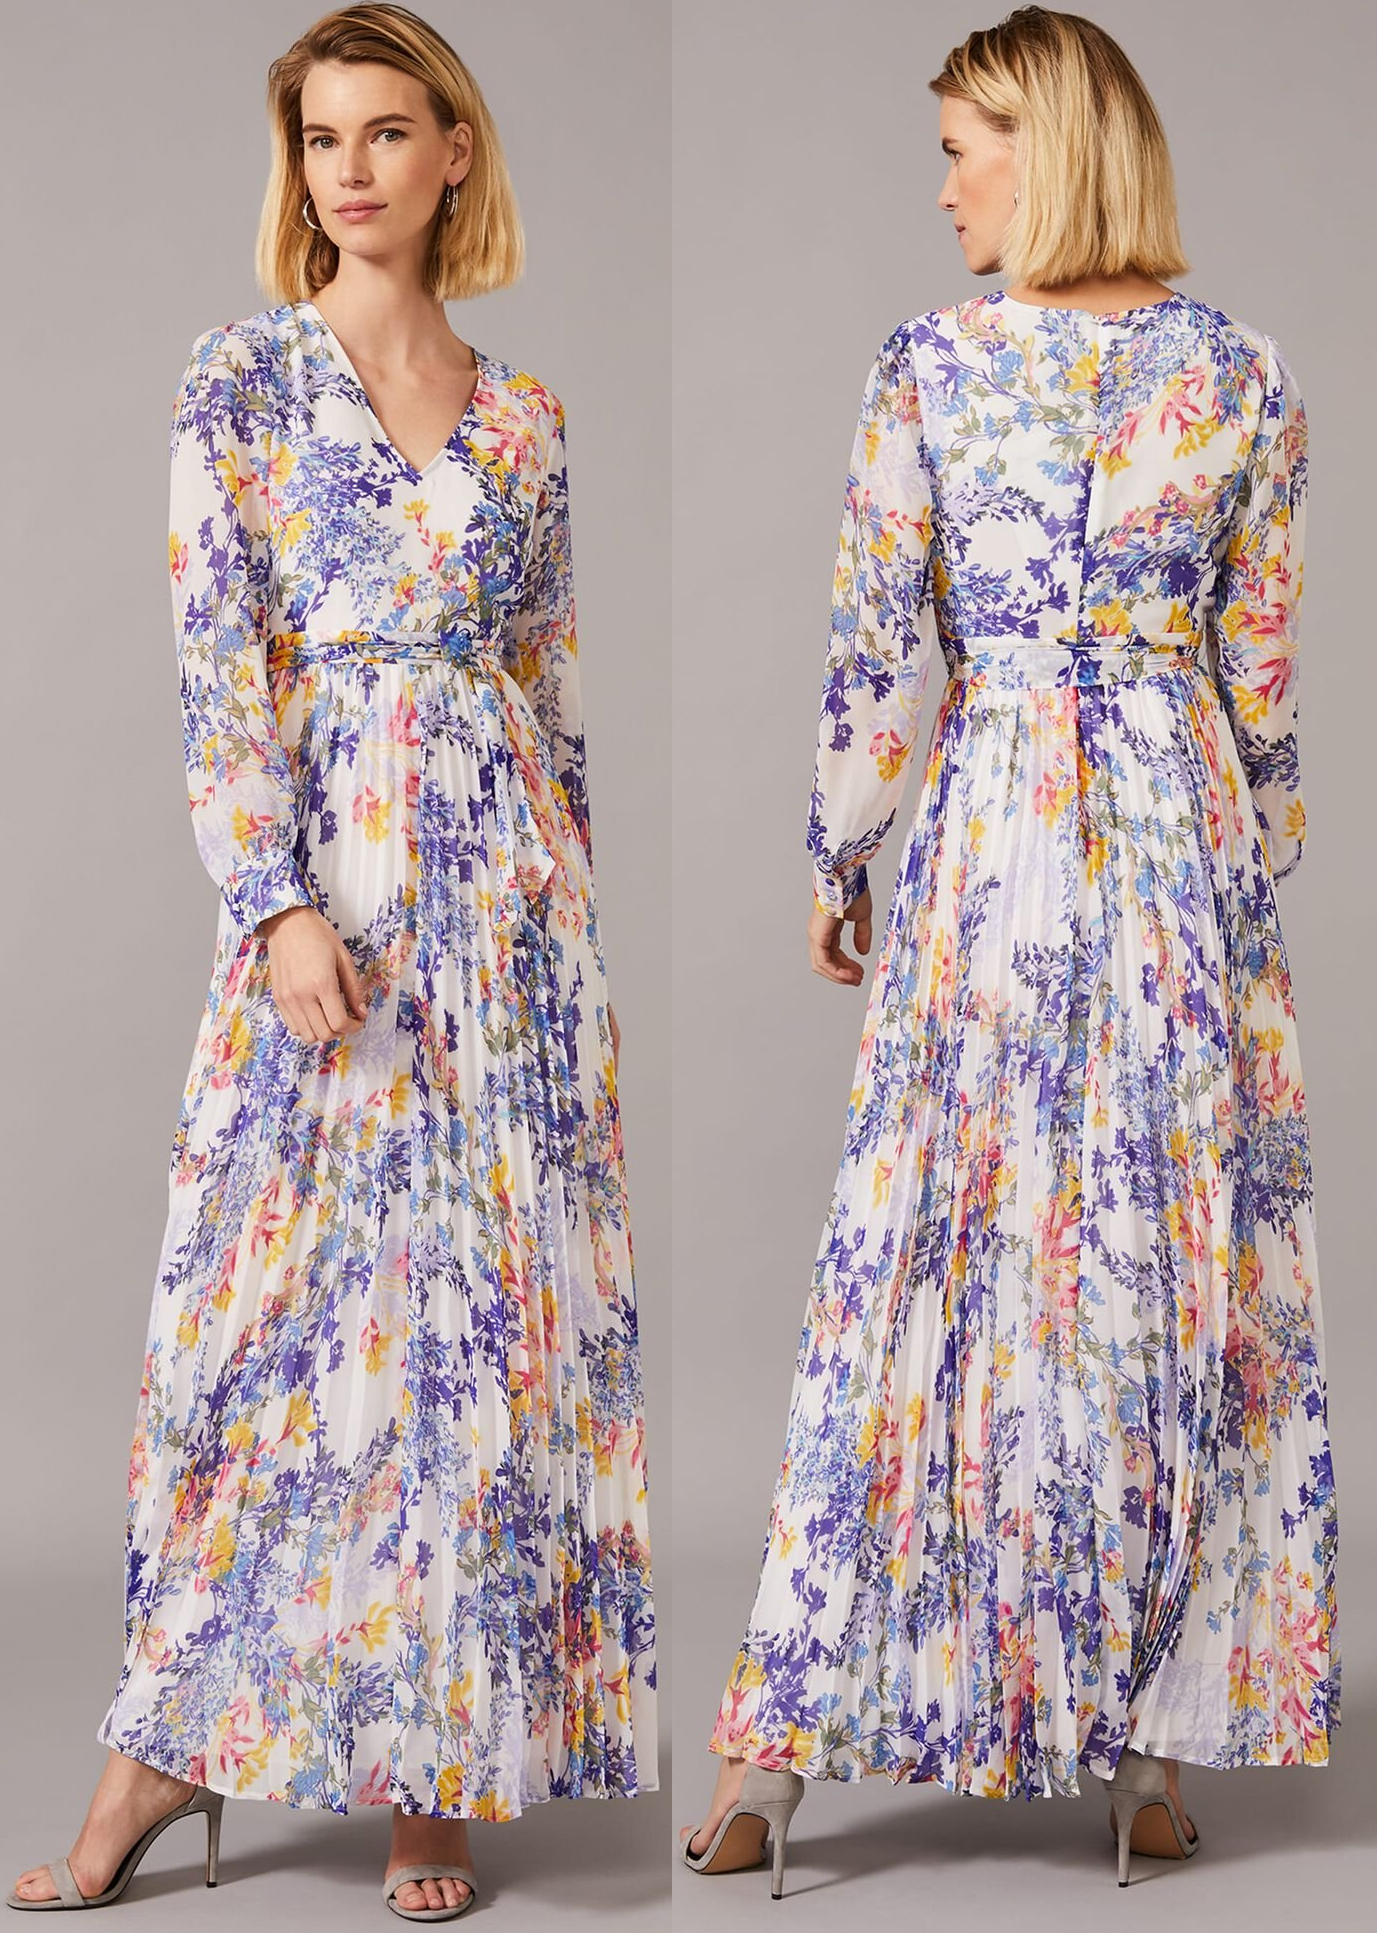 Long Blue Floral Dress for Royal Ascot Races 2021. Floral Dress for Summer Weddings 2021. Floral outfits for Royal Ascot 2021. What to wear to a Summer Wedding. What to wear for Royal Ascot 2021. Outfit ideas for Royal Ascot 2021. Floral Summer Dresses 2021. Pleated Maxi Dresses 2020. Dresses that meet the Royal Ascot Dress Code 2021. Phase Eight Dresses 2020.